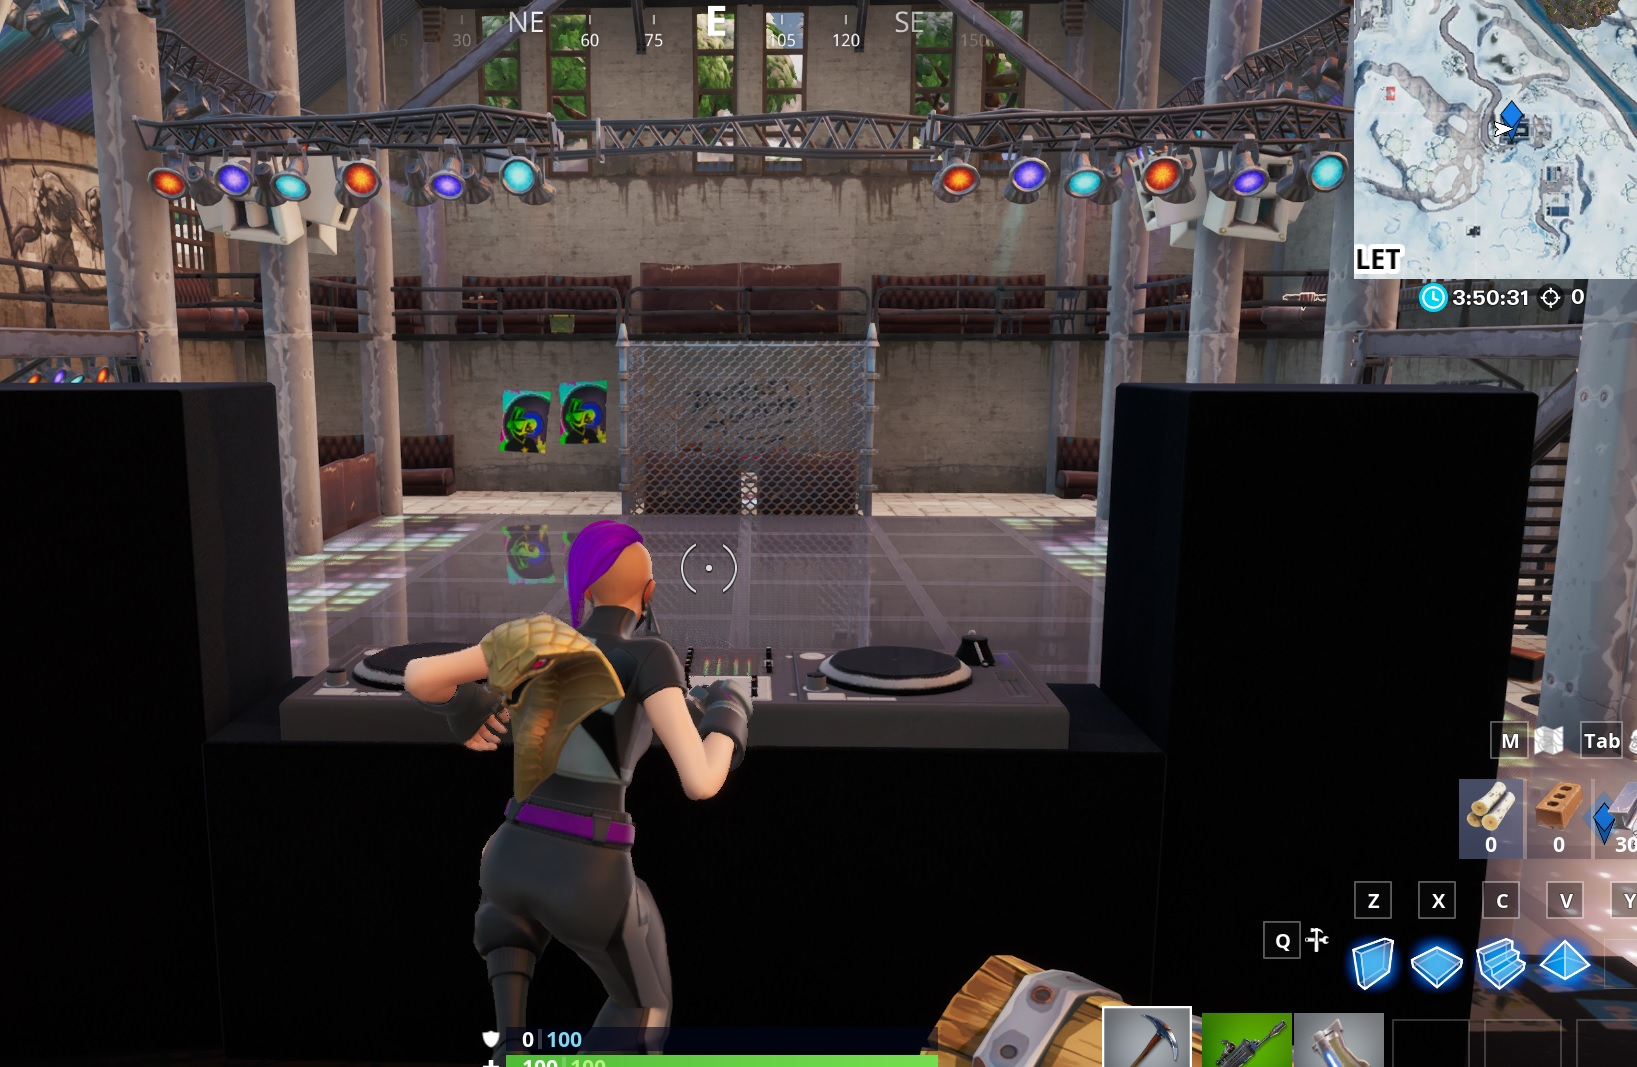 Fortnite Dance Behind The Dj Booth At A Club With The Y0nd3r Outfit Vg247 Battle royale that could be unlocked fron reaching tier 47 of the season x battle pass. fortnite dance behind the dj booth at